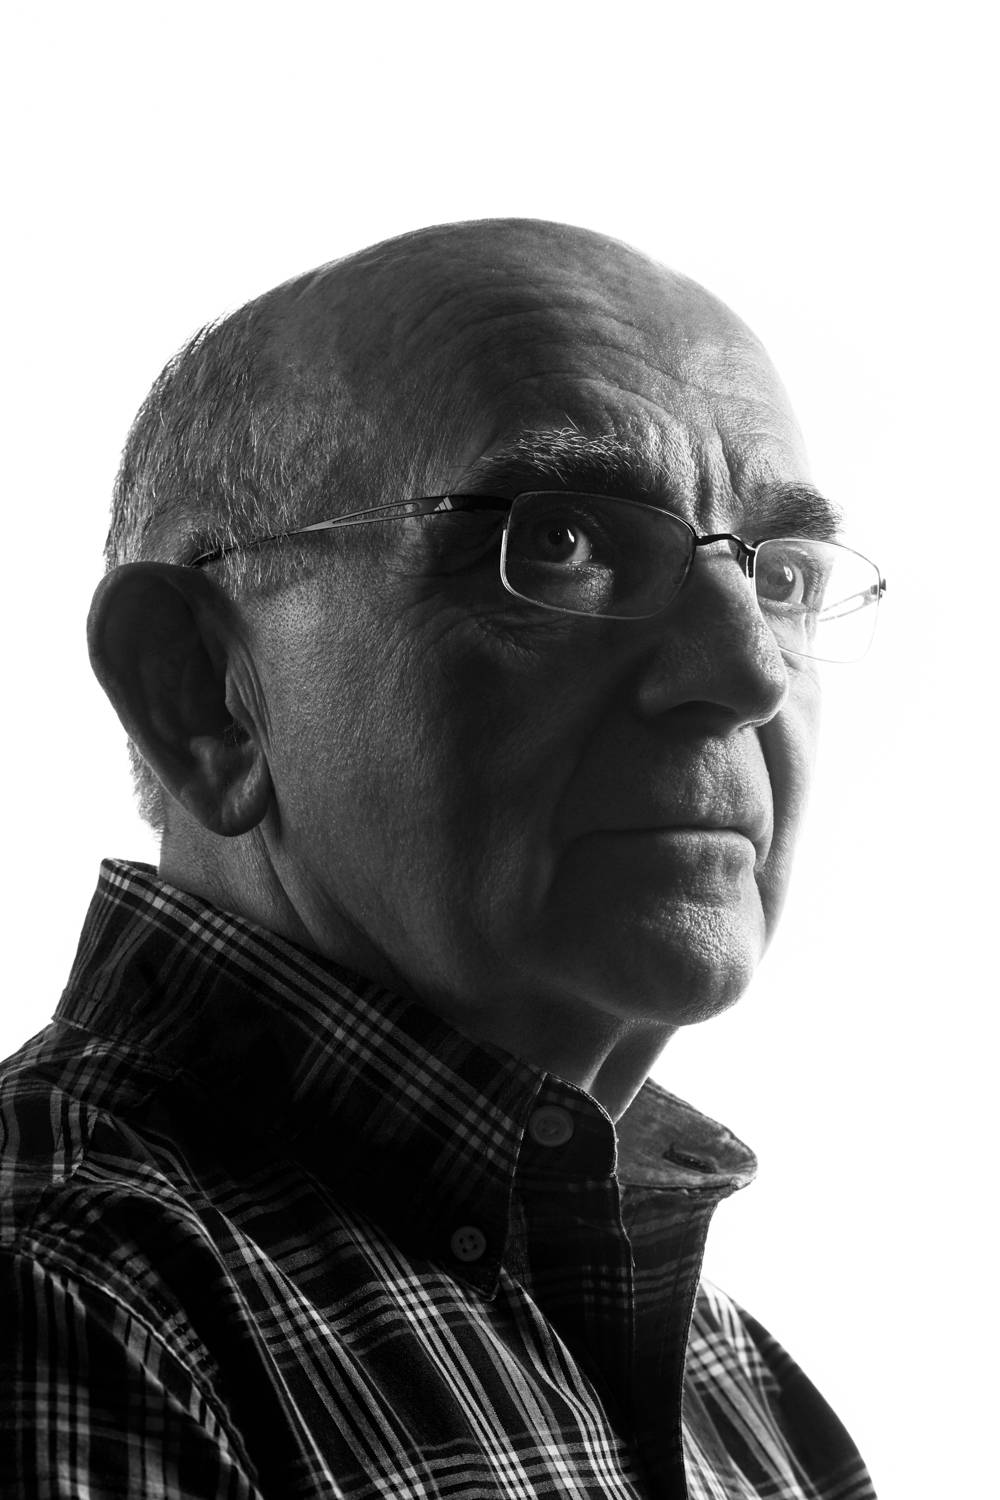 Man on white background, studio photography, black and white portraits, older man with glasses